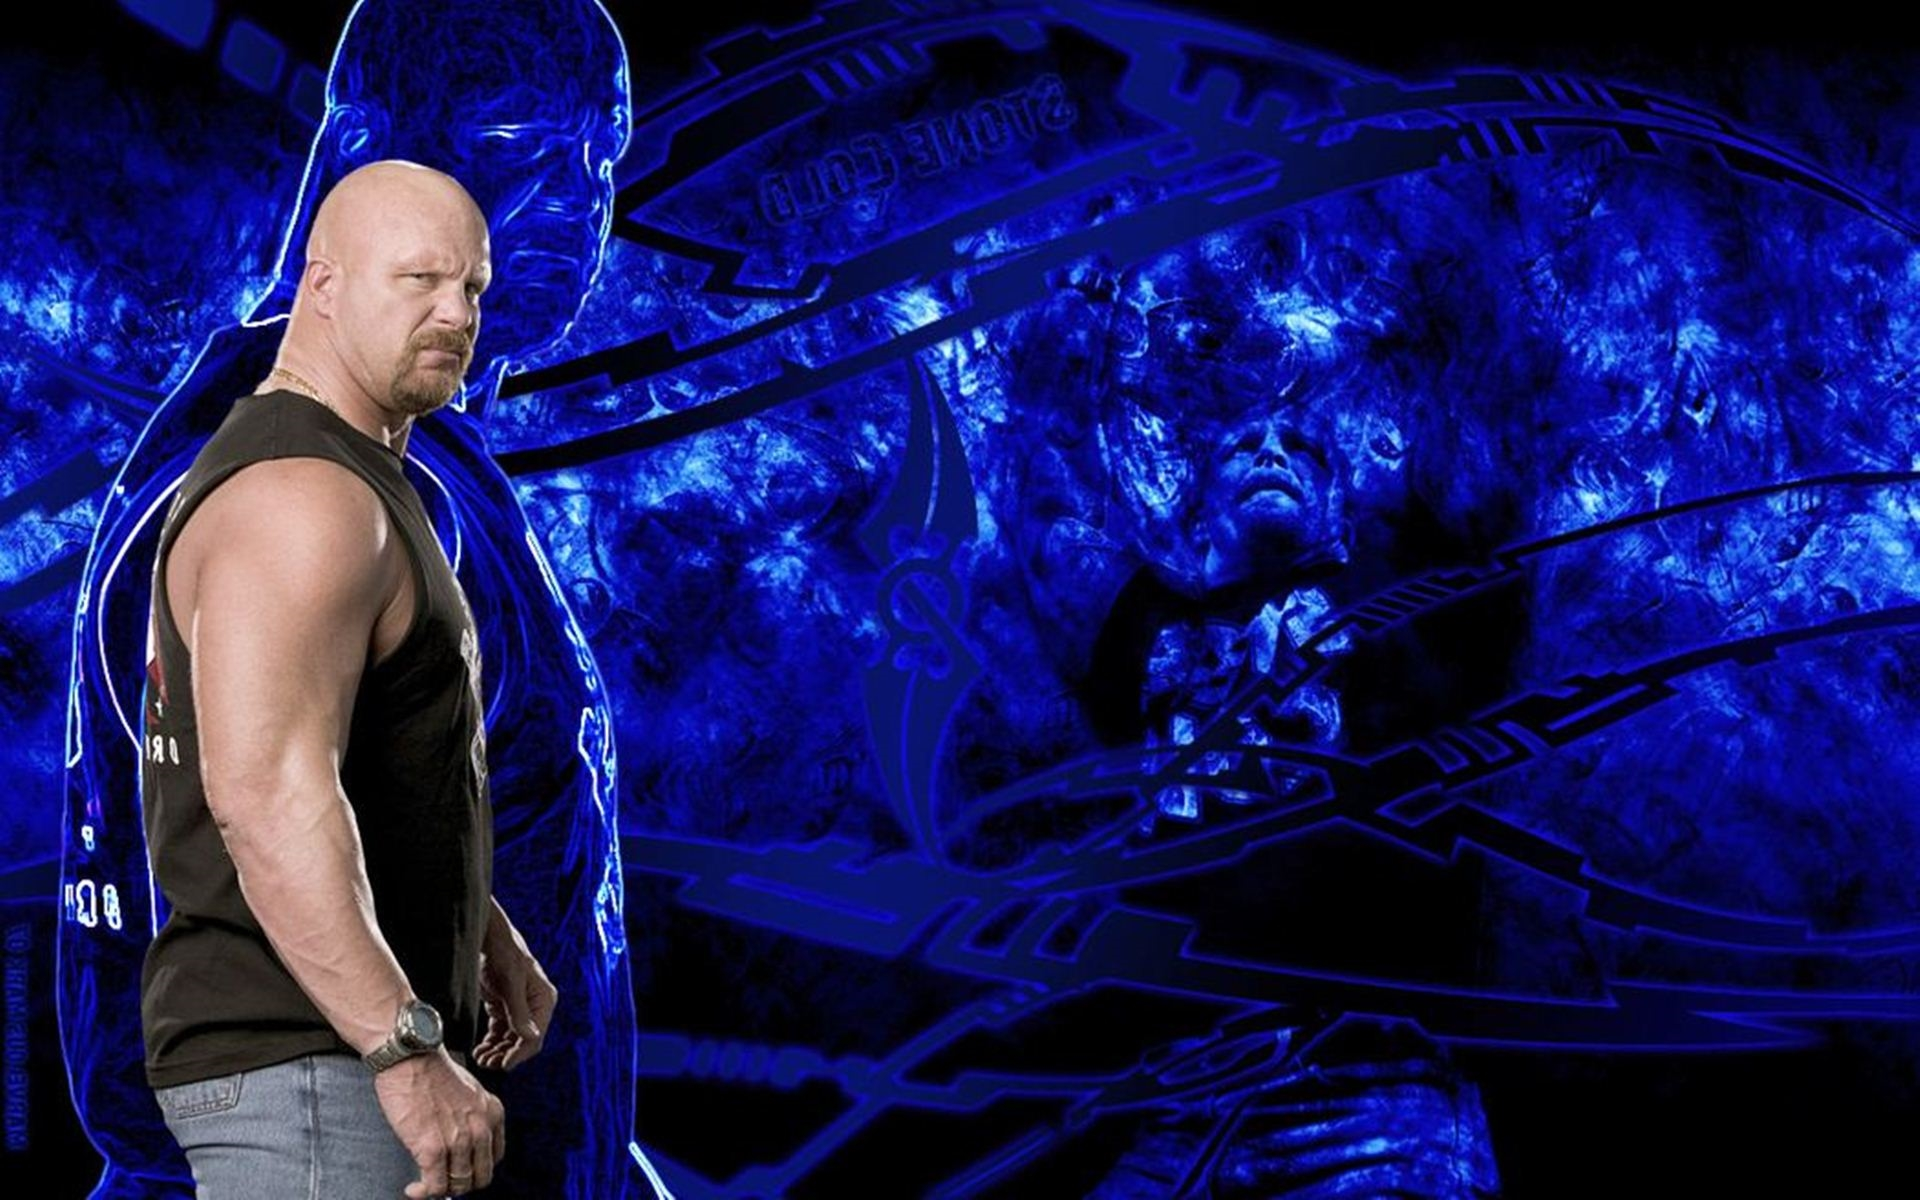 stone cold steve austin free hd background wallpaper